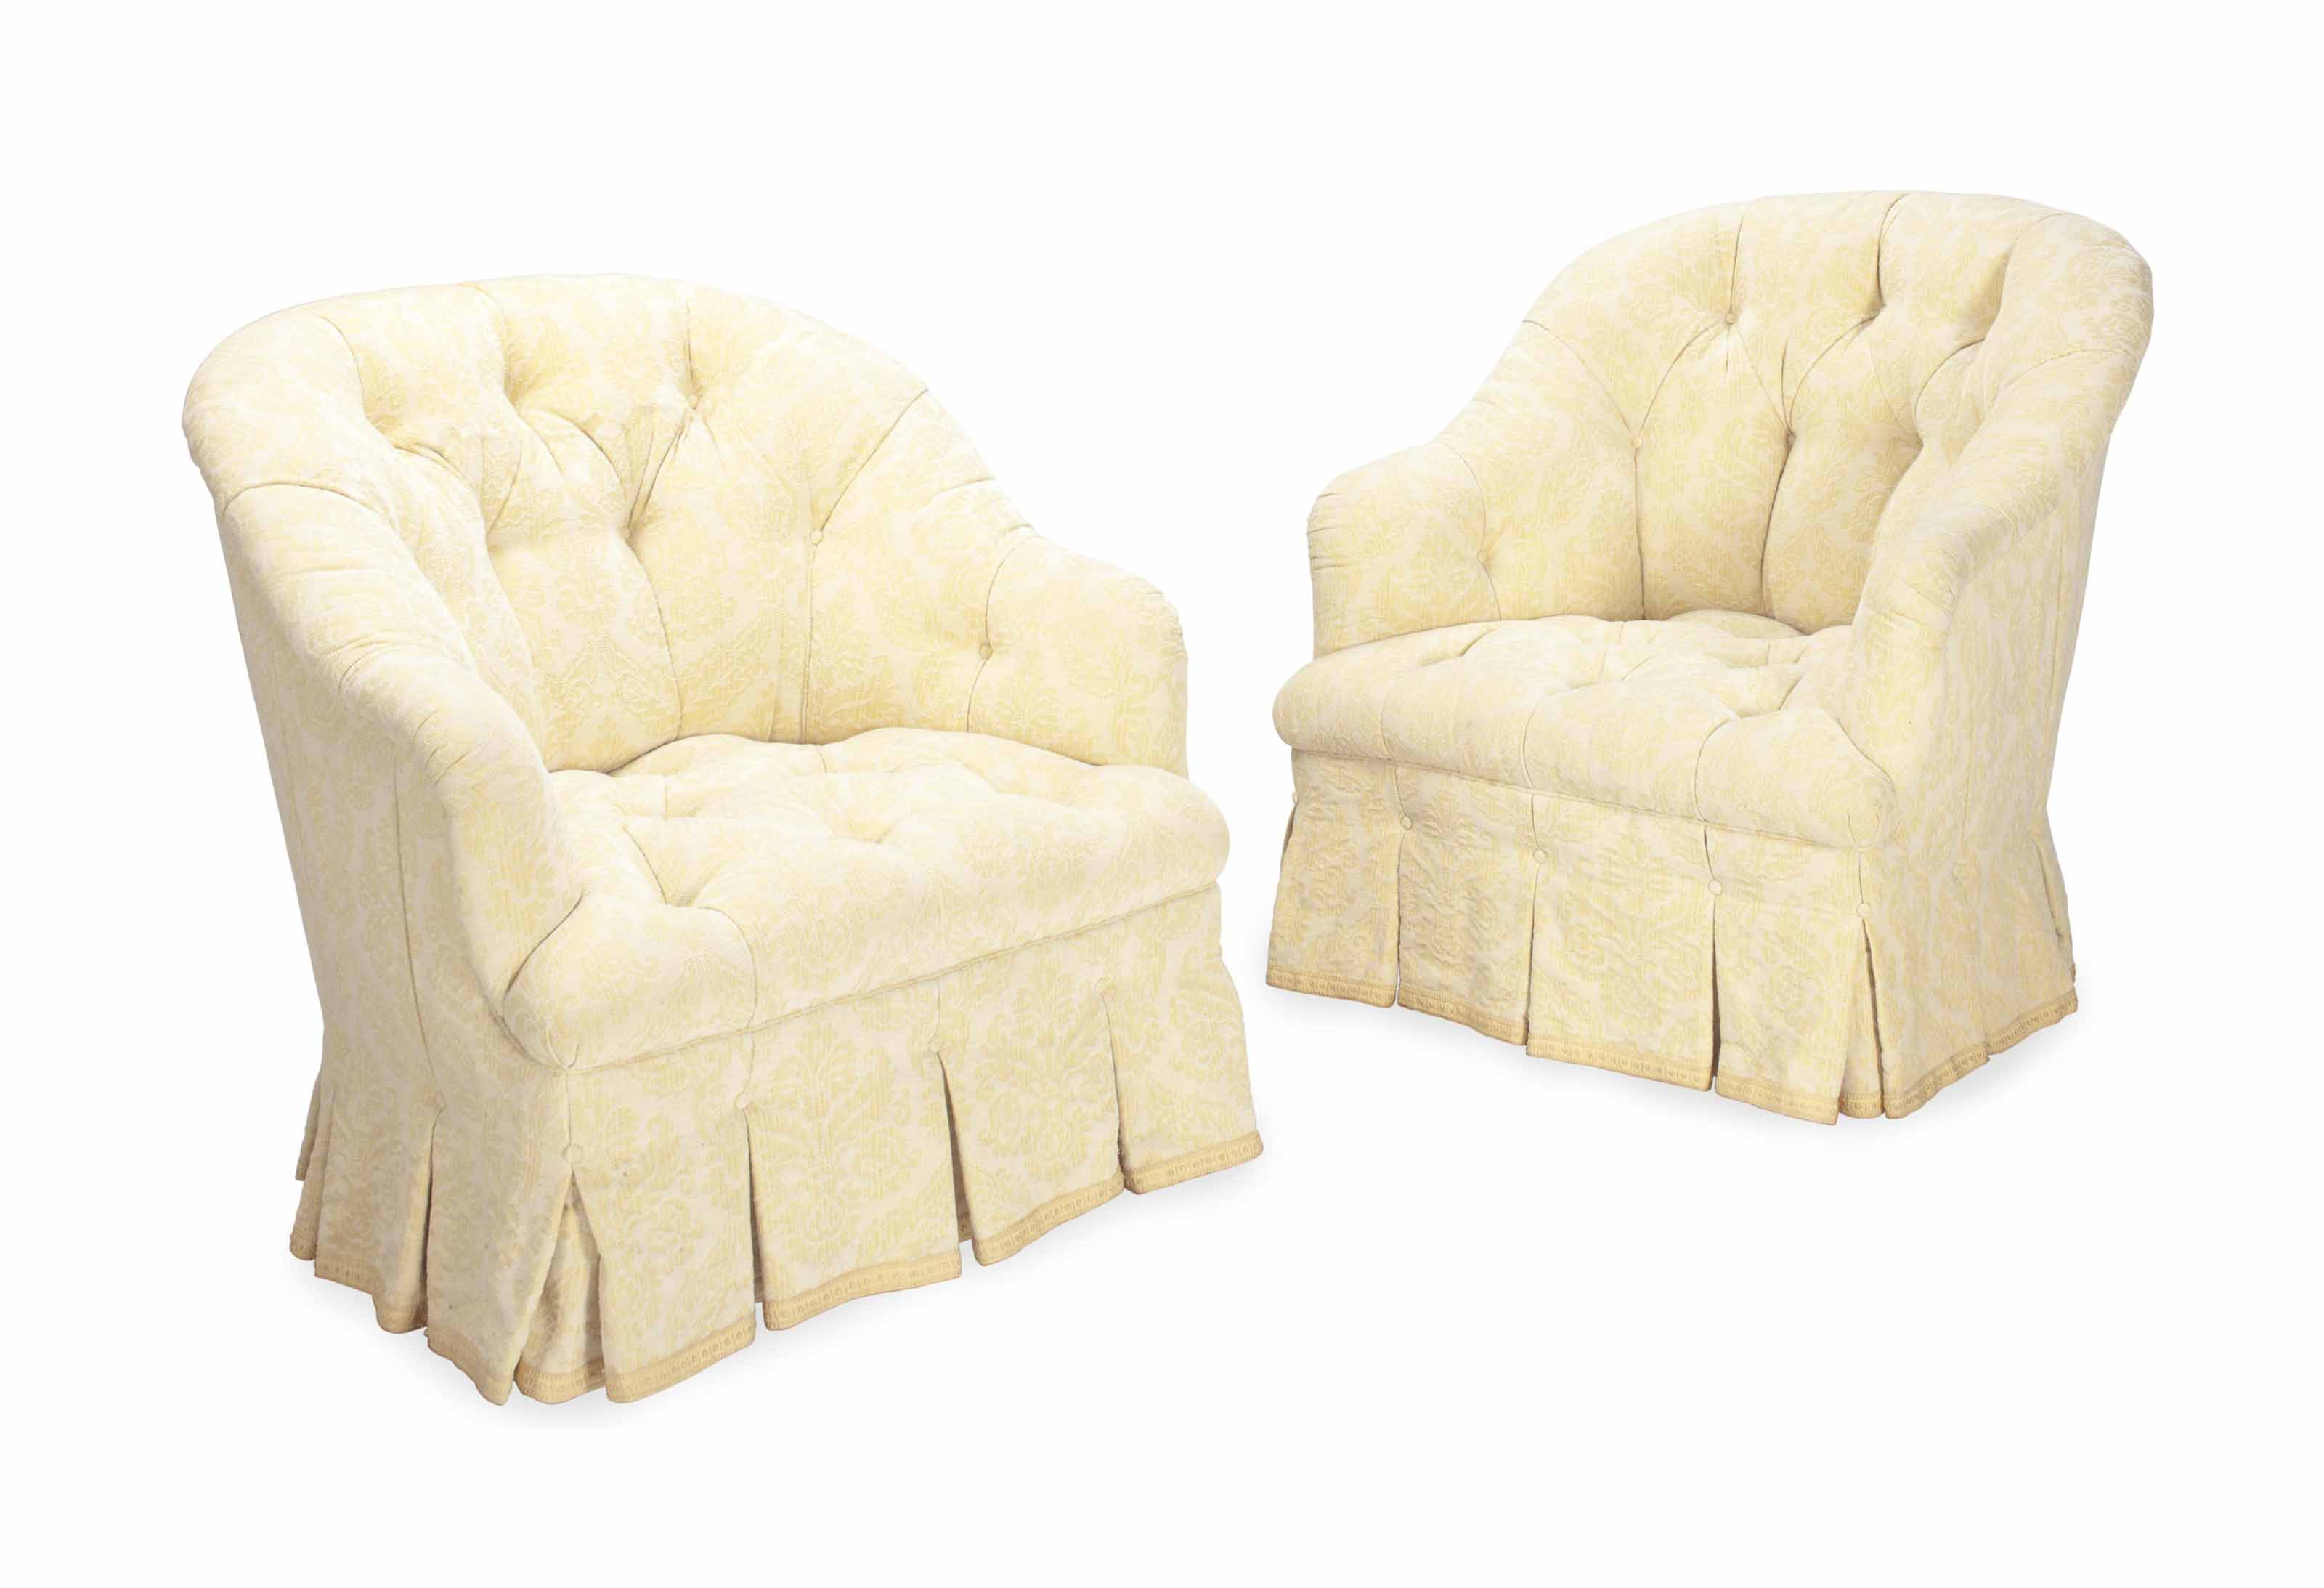 tufted yellow chair gandia blasco clack a pair of button and cream upholstered club